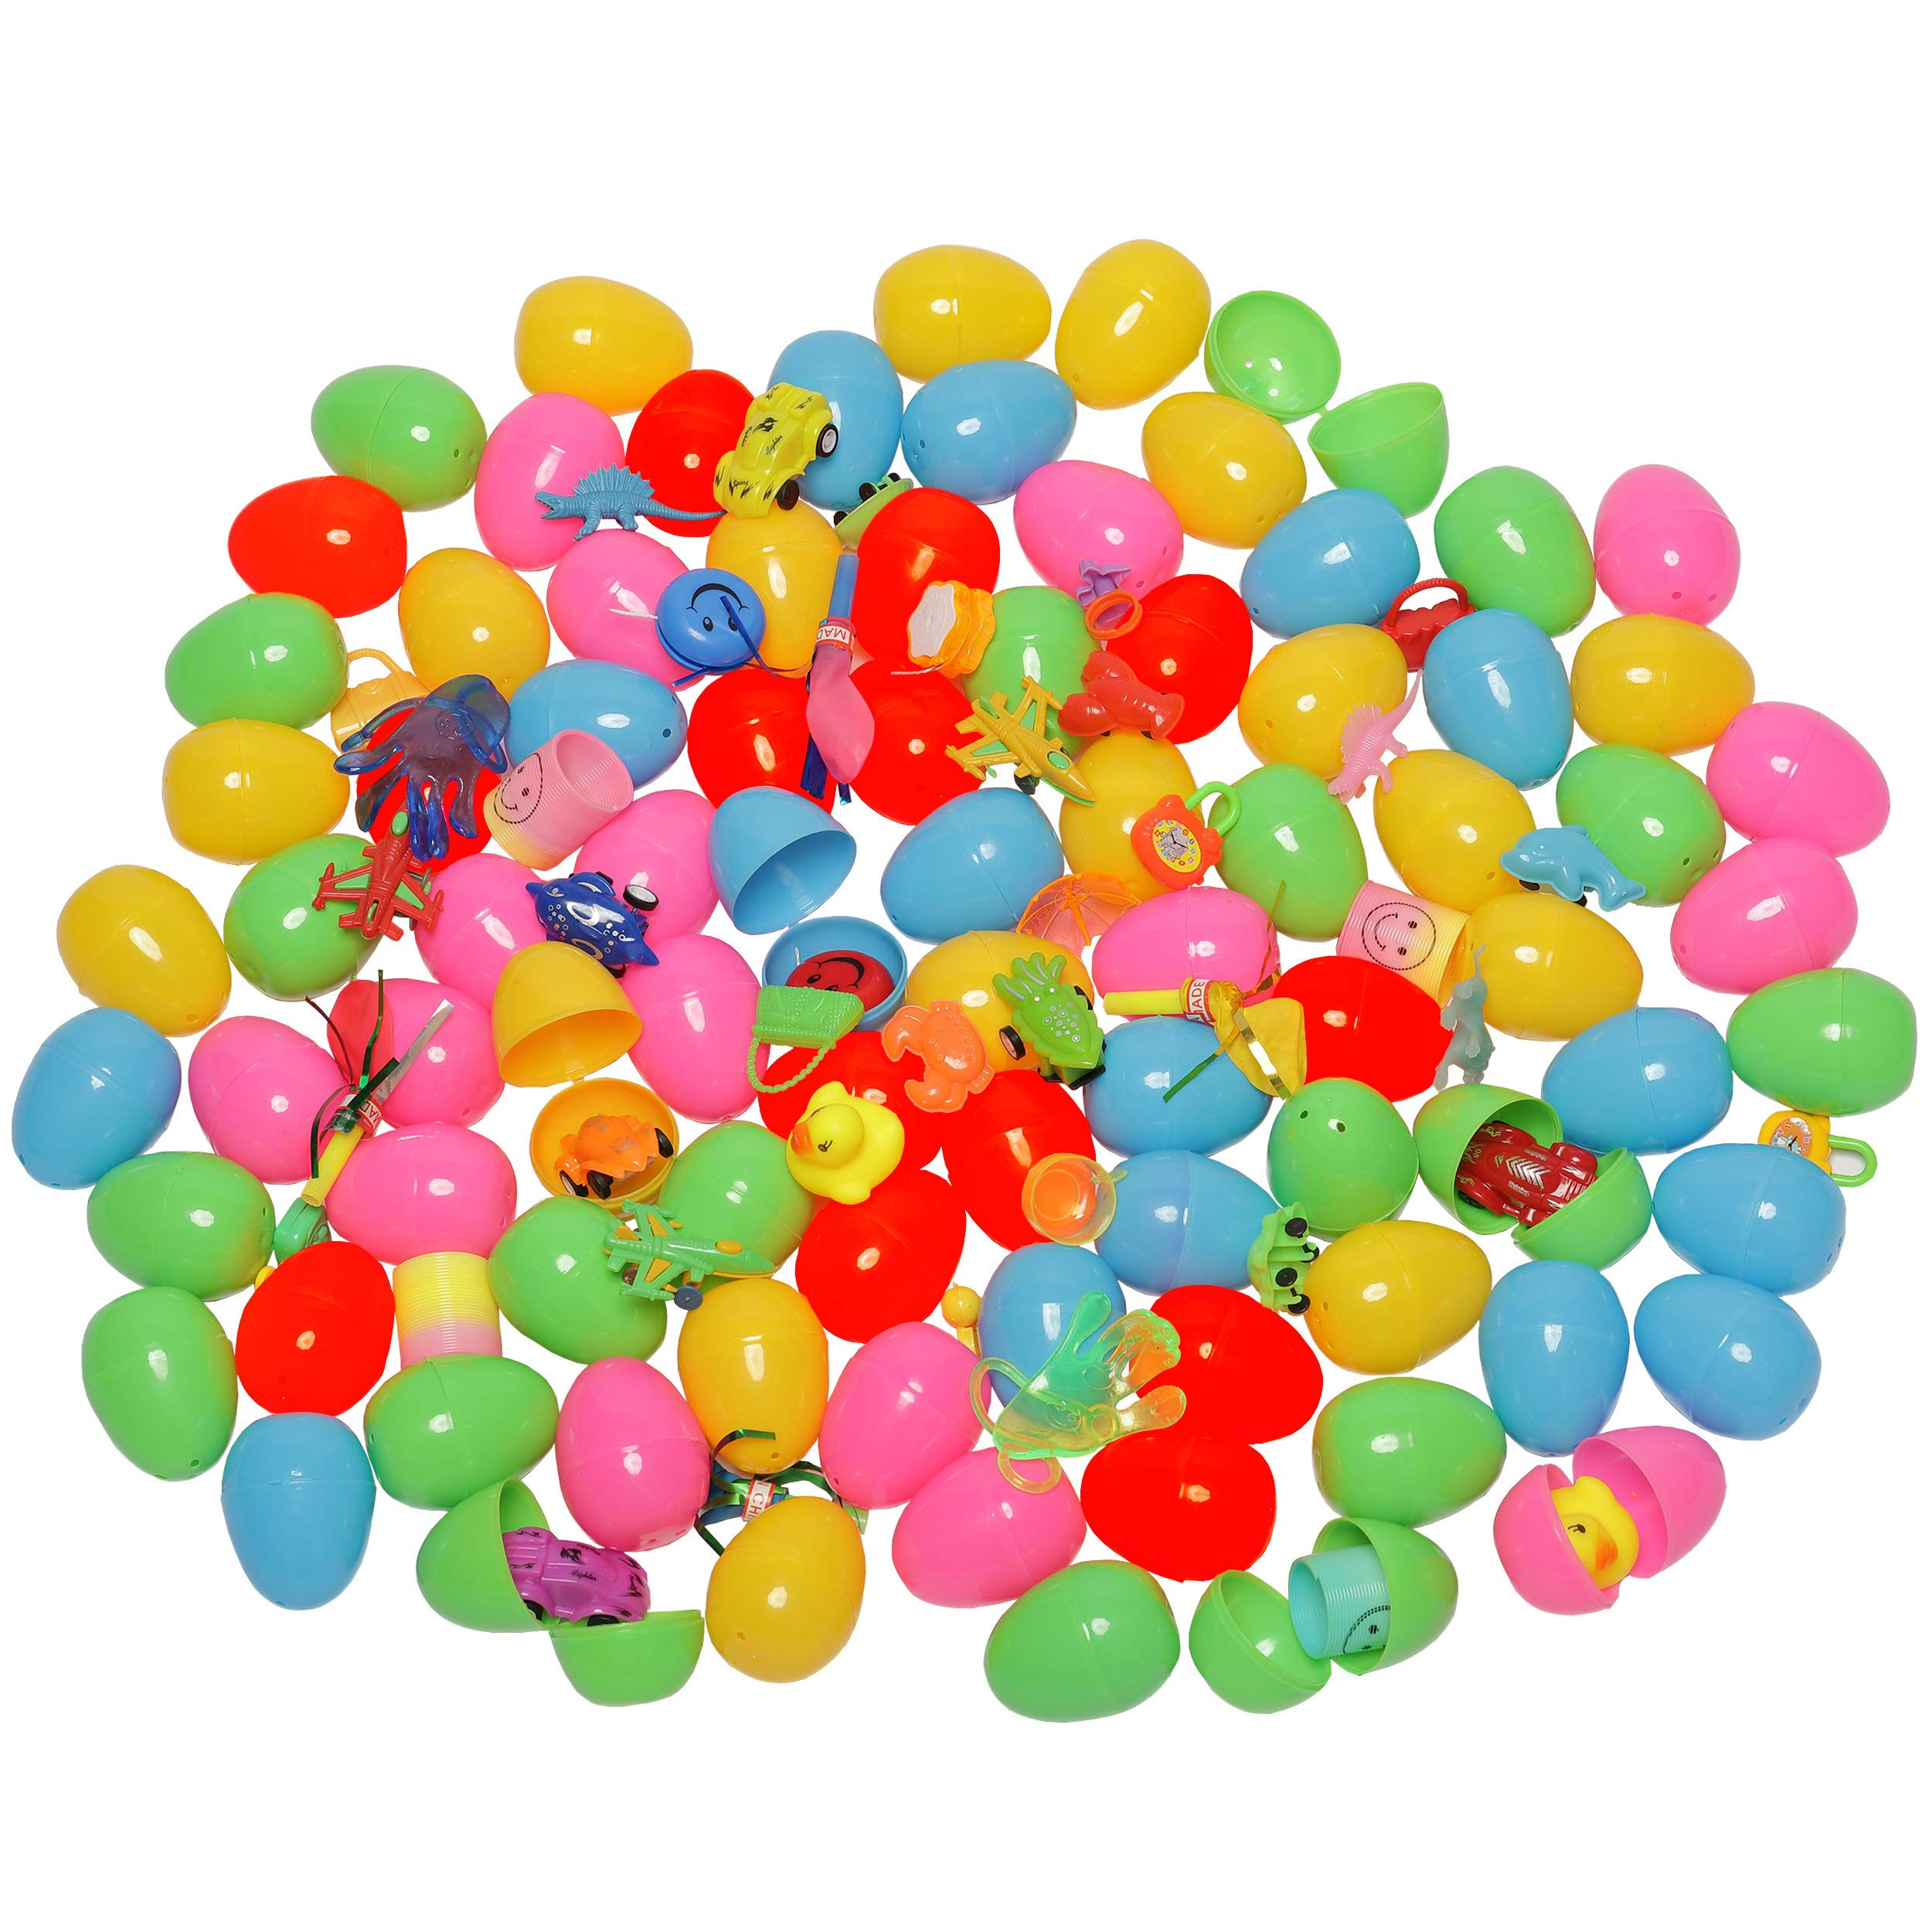 TEEHOME 100 Toys Filled Surprise Eggs - 2.5 Inches Bright Colorful Plastic Easter Eggs with 24 Kinds of Popular Toys for Girls and Boys